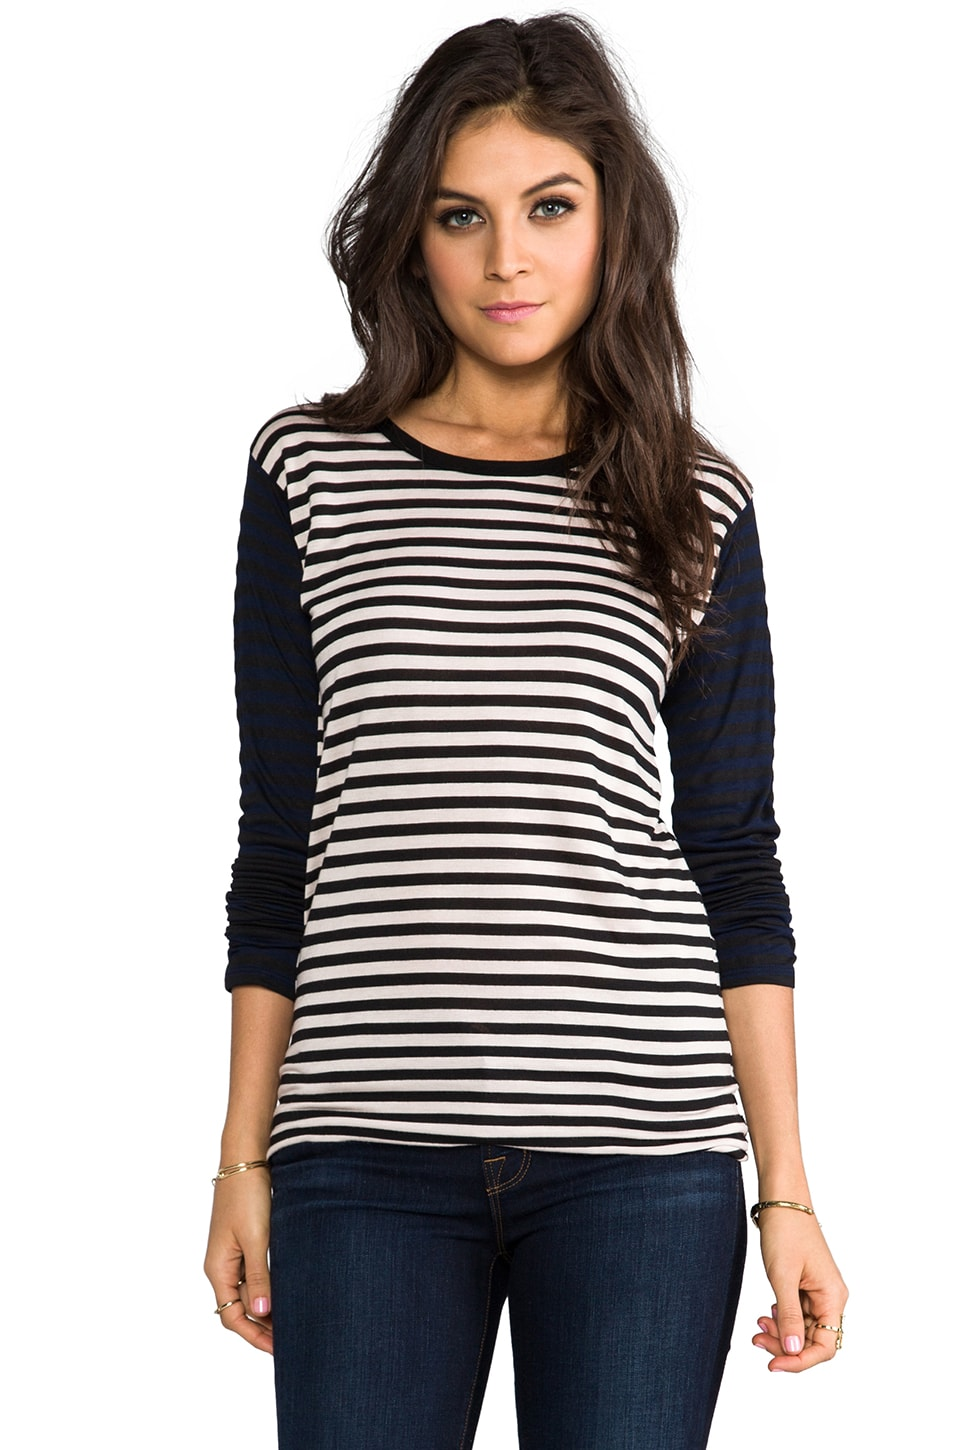 The Lady & the Sailor Boxy Long Sleeve in Nude Stripe/Nave Stripe